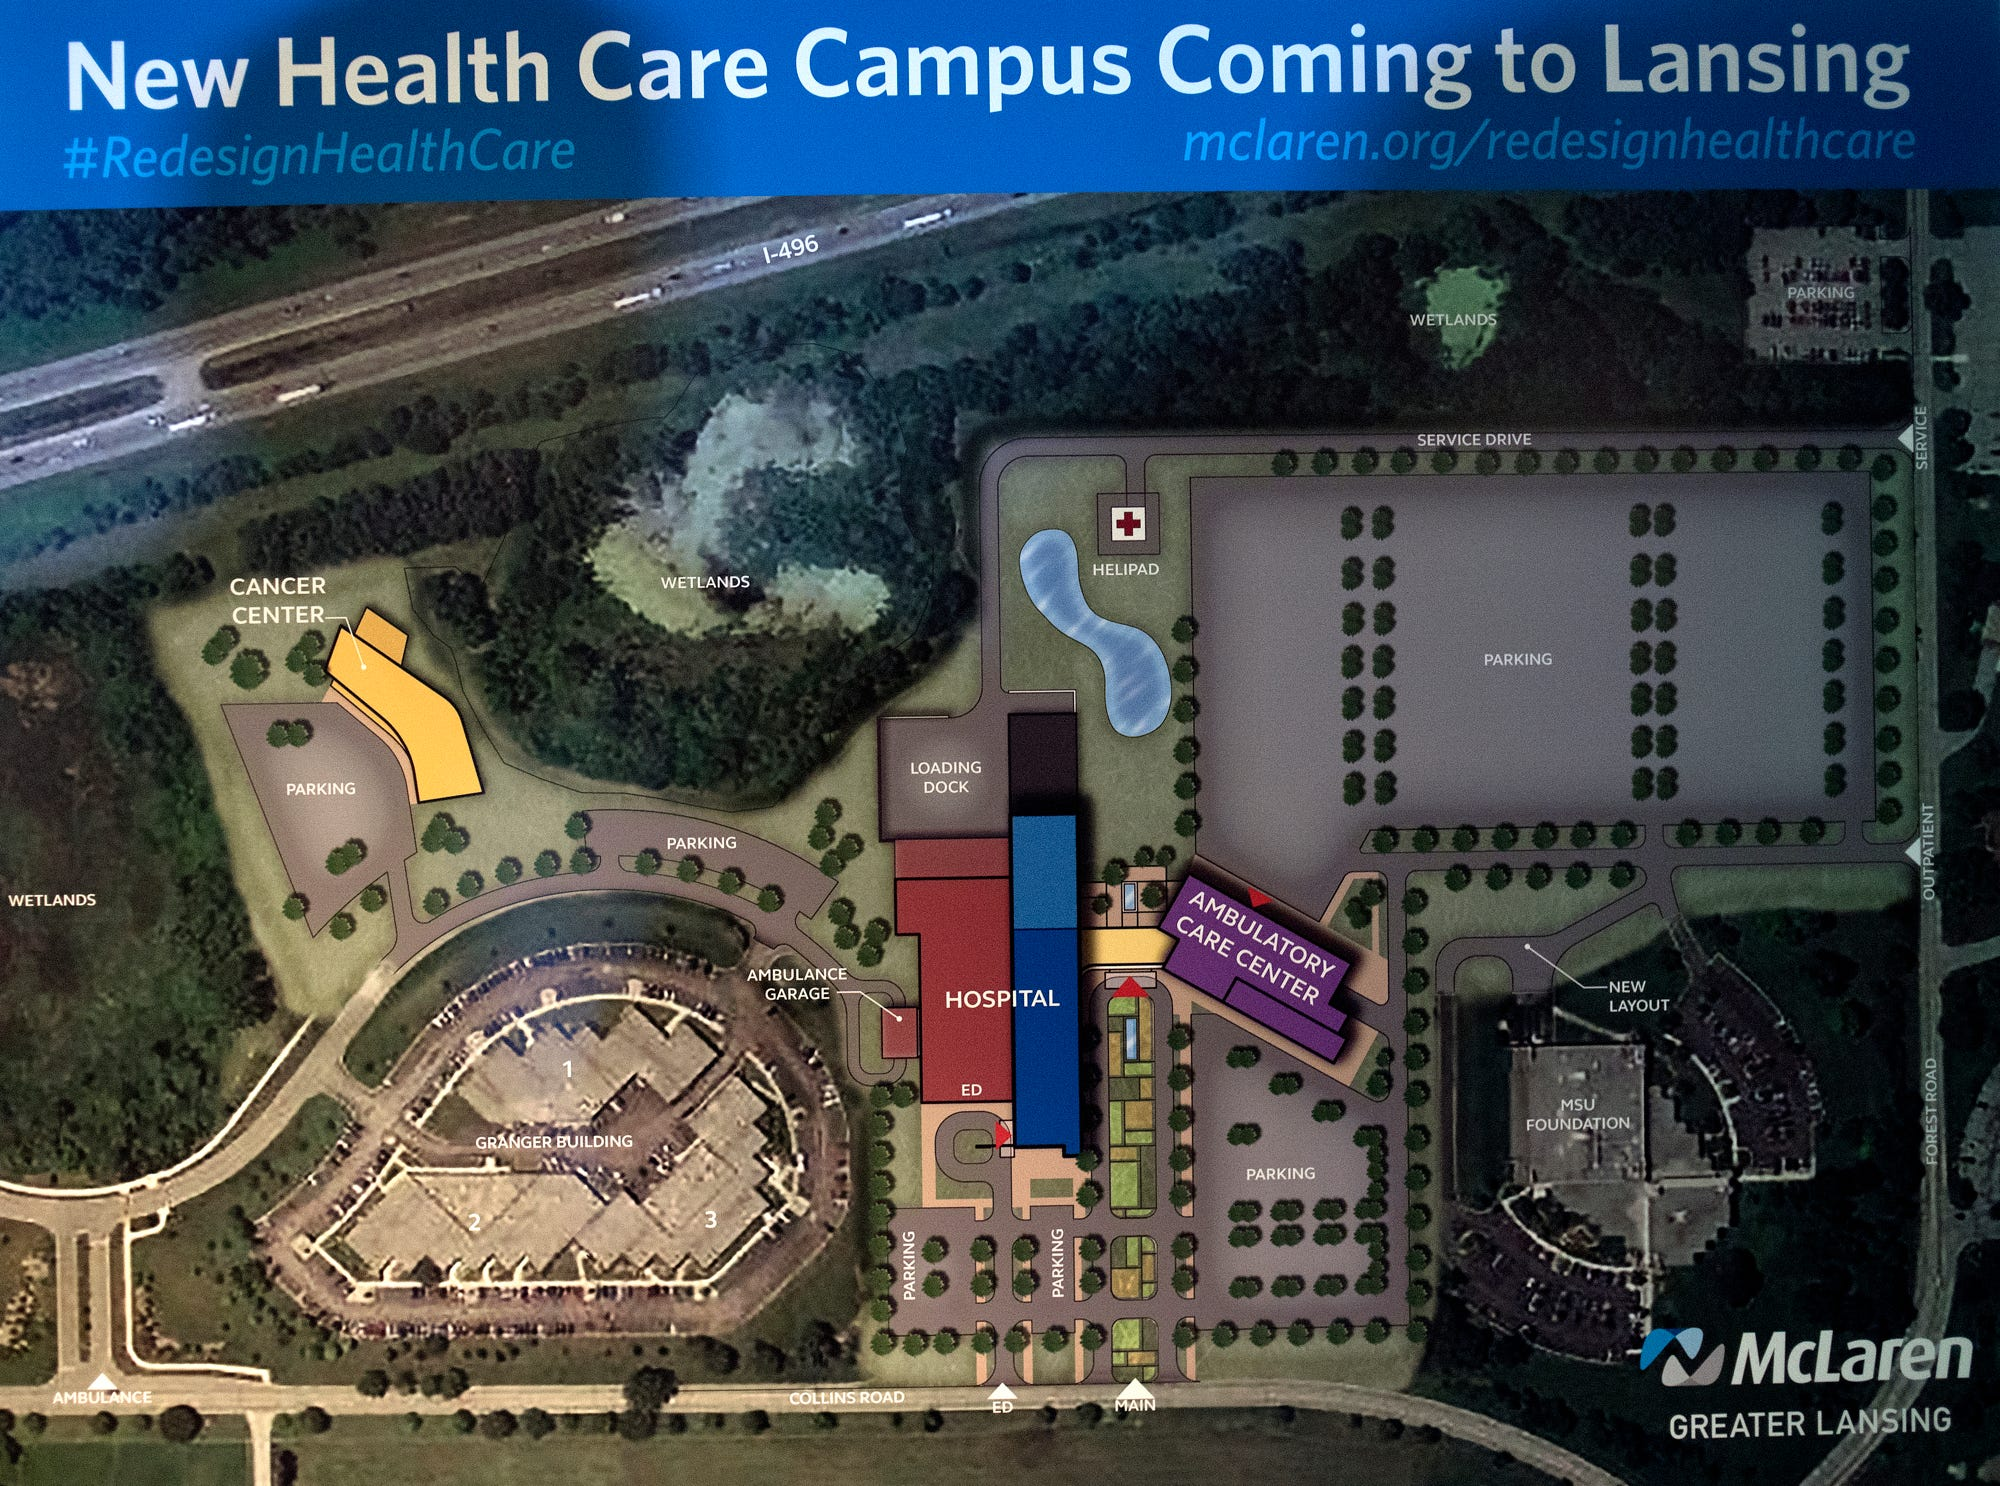 Charming Finally, Lansing Wonu0027t Be The Red Headed Stepchild For Its Own Medical  School;, Which Was Always Crazy To Me. This Will Be MSUu0027s Flagship  Hoospital Campus ...